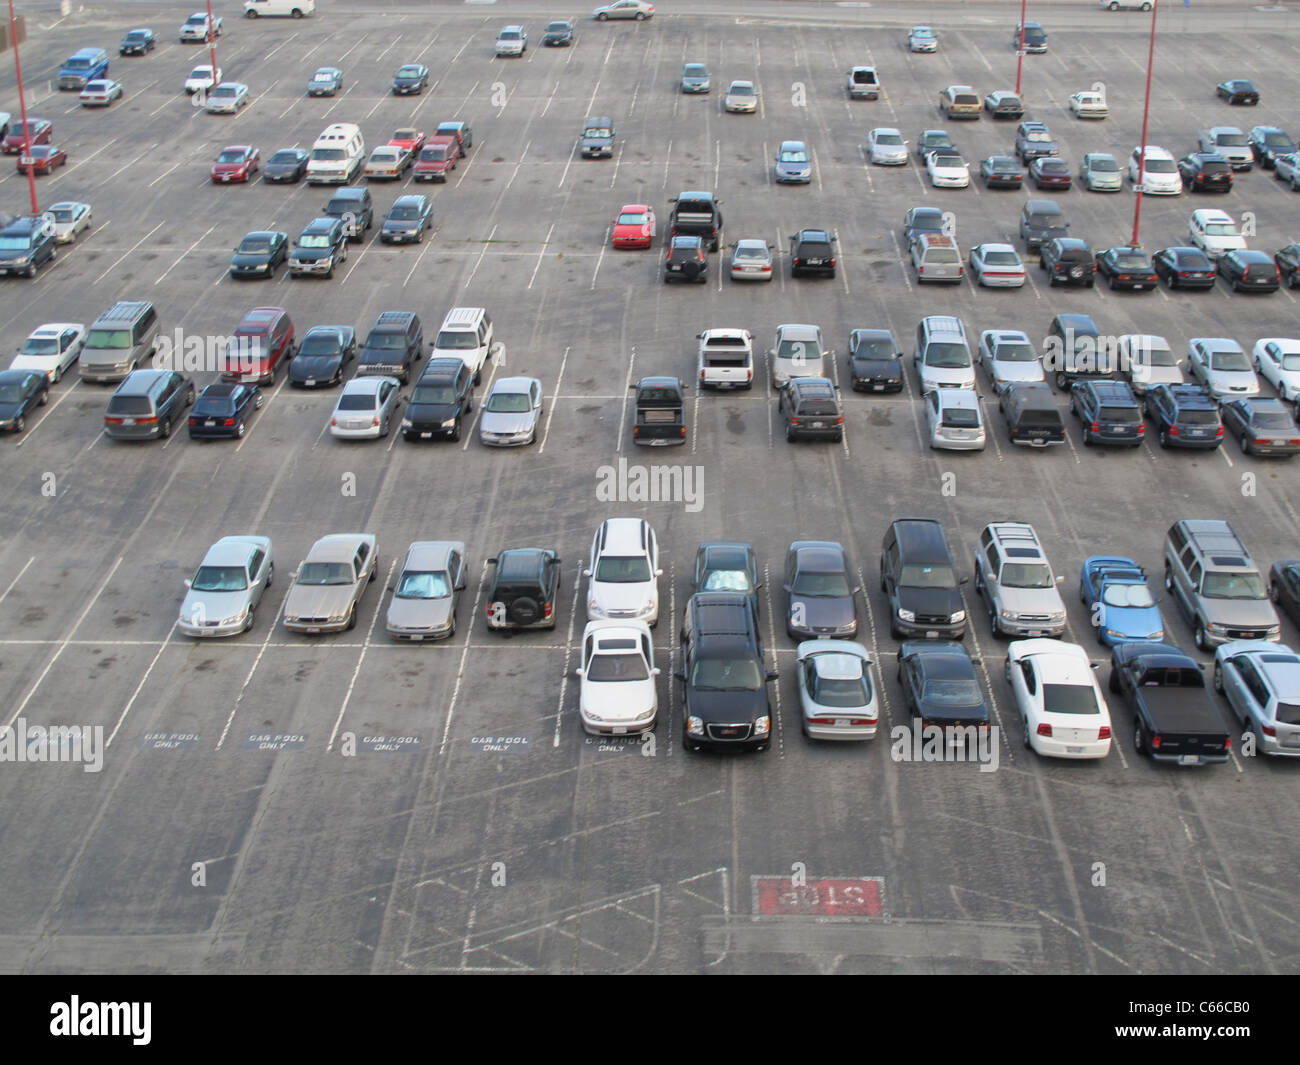 Aerial view of a long term parking lot at SFO airport, San Francisco, California, United States of America - Stock Image